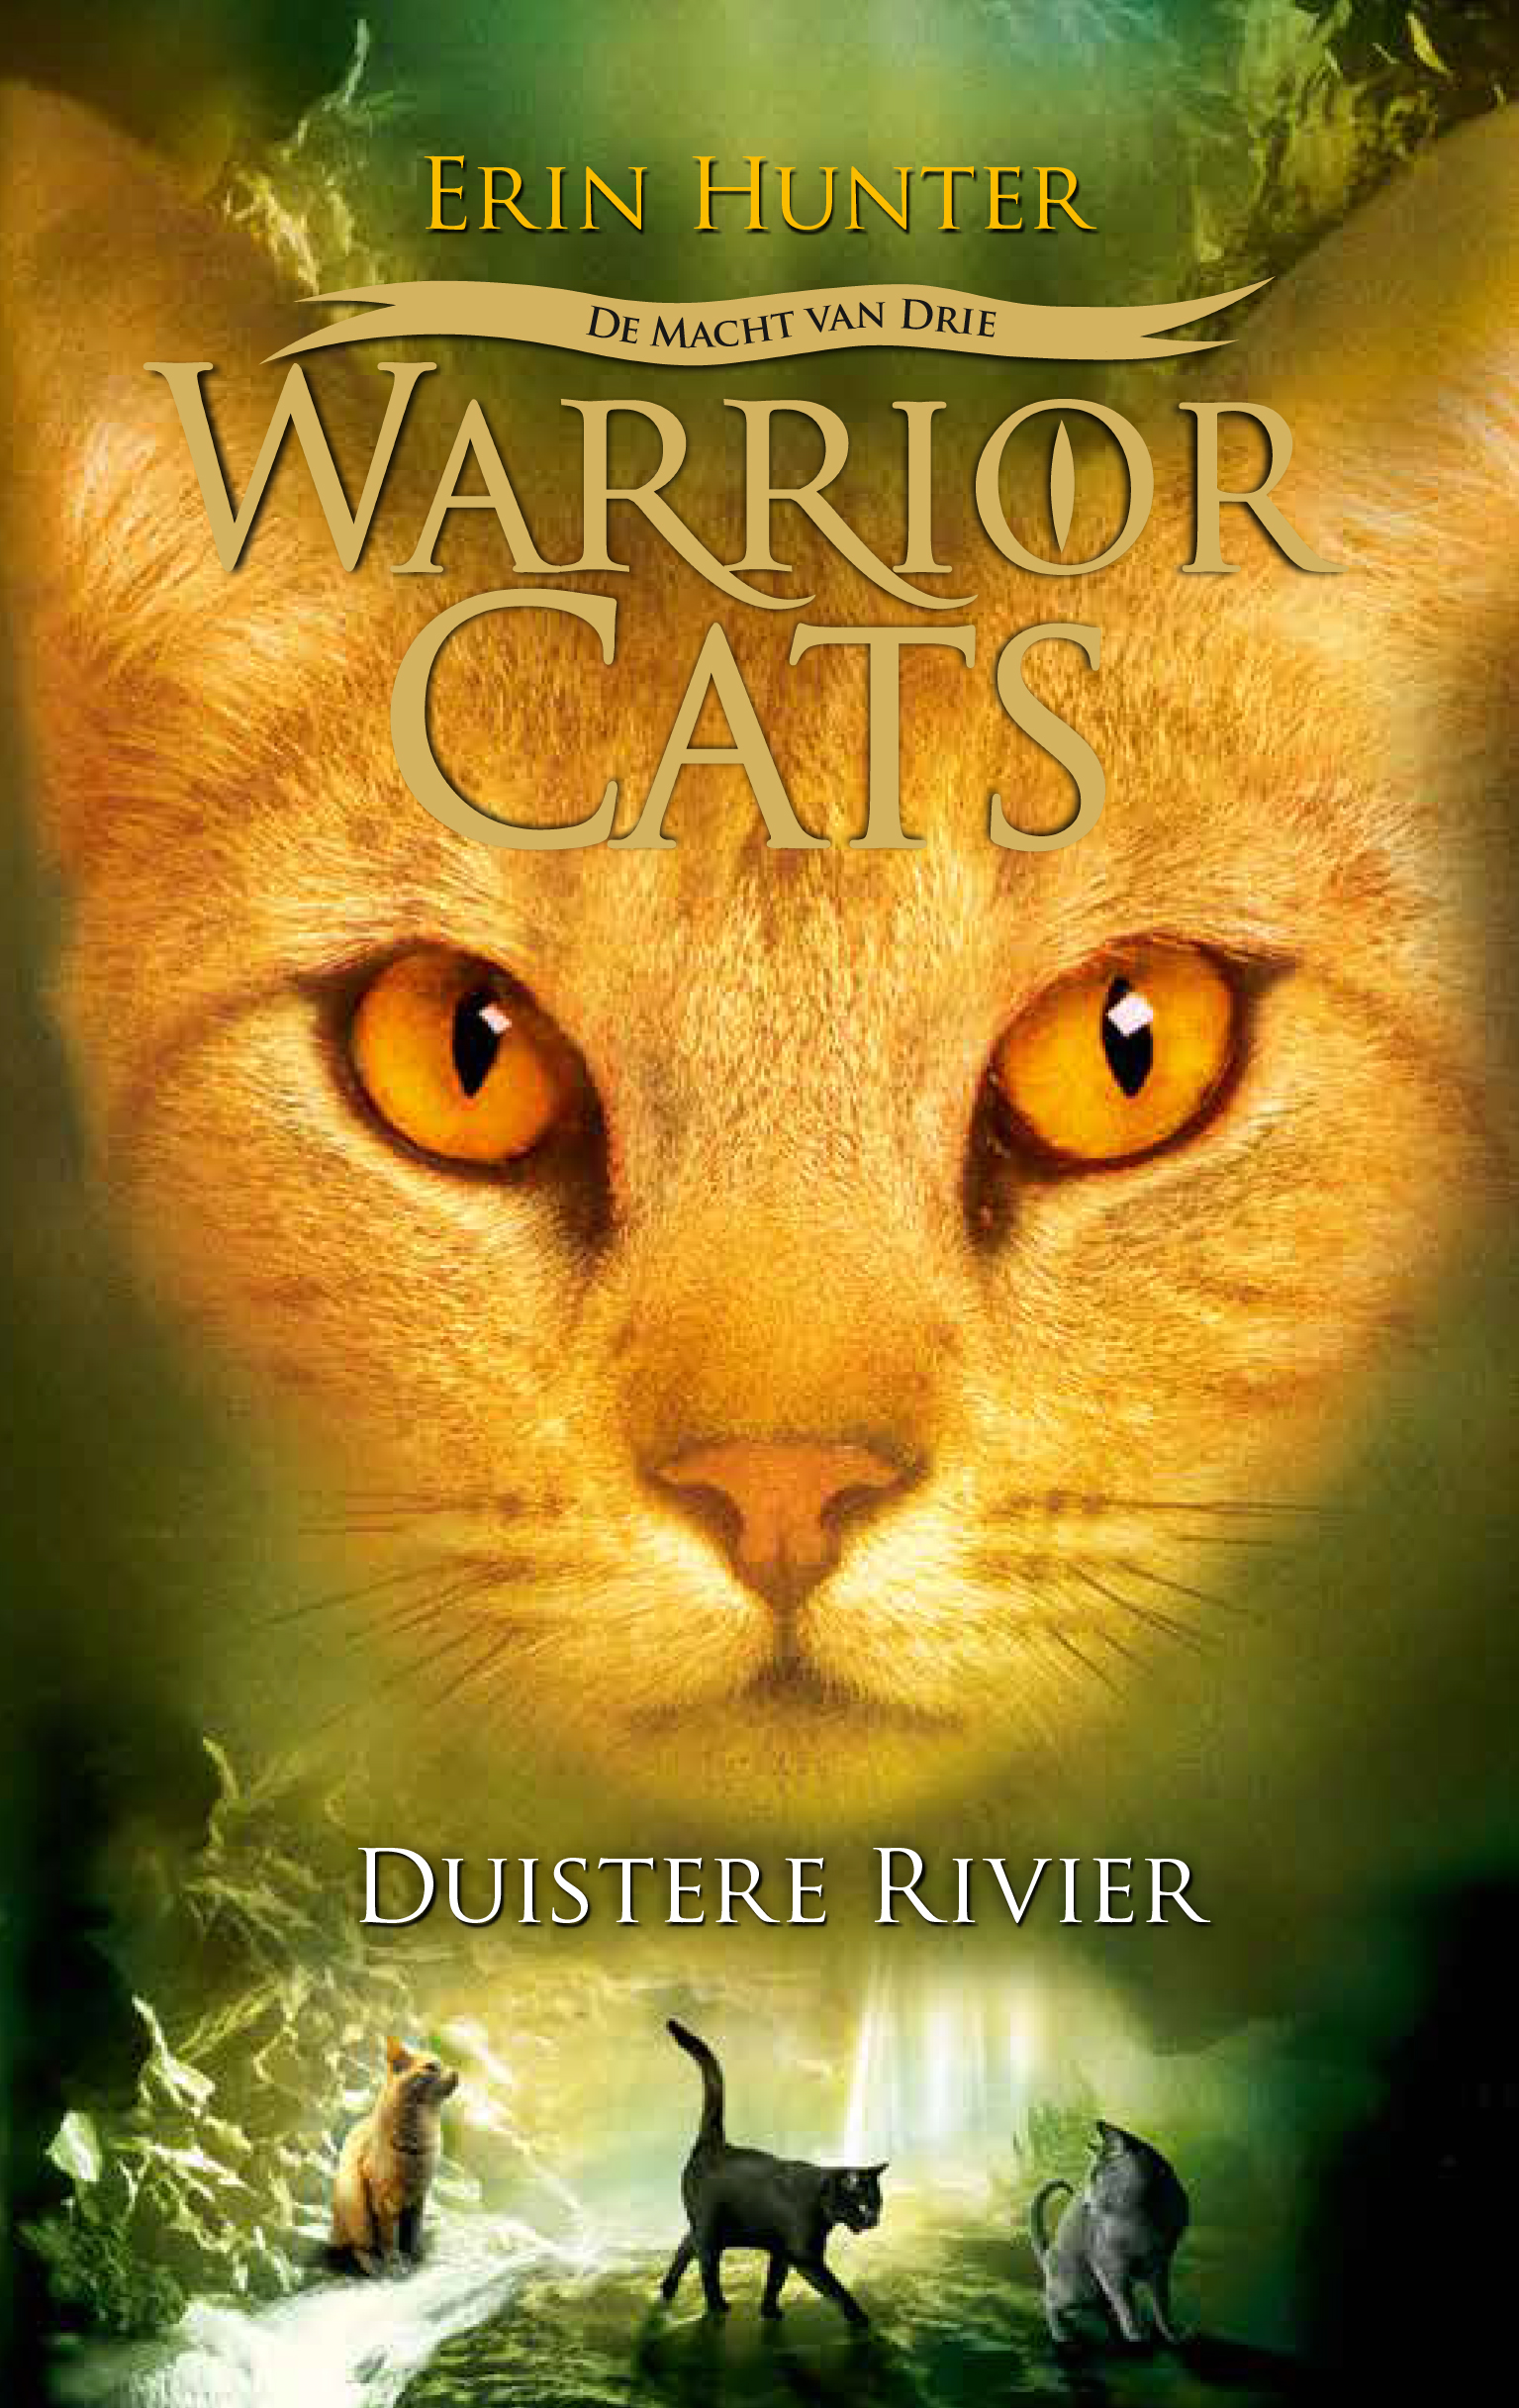 Duistere rivier cover